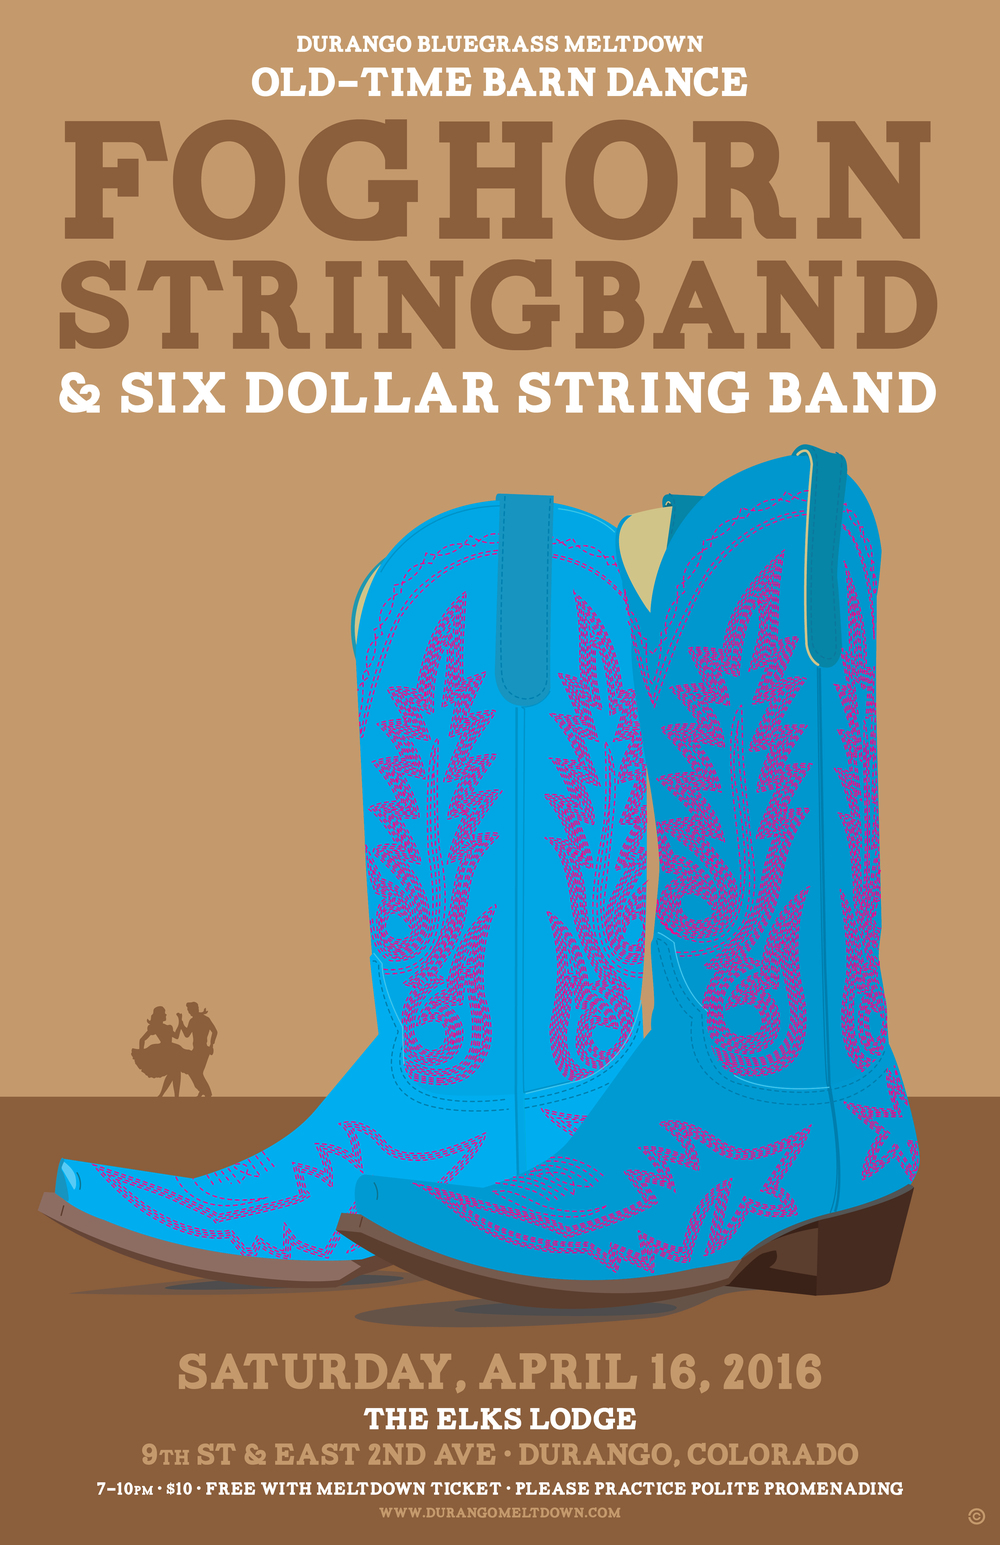 Boots - Foghorn String band